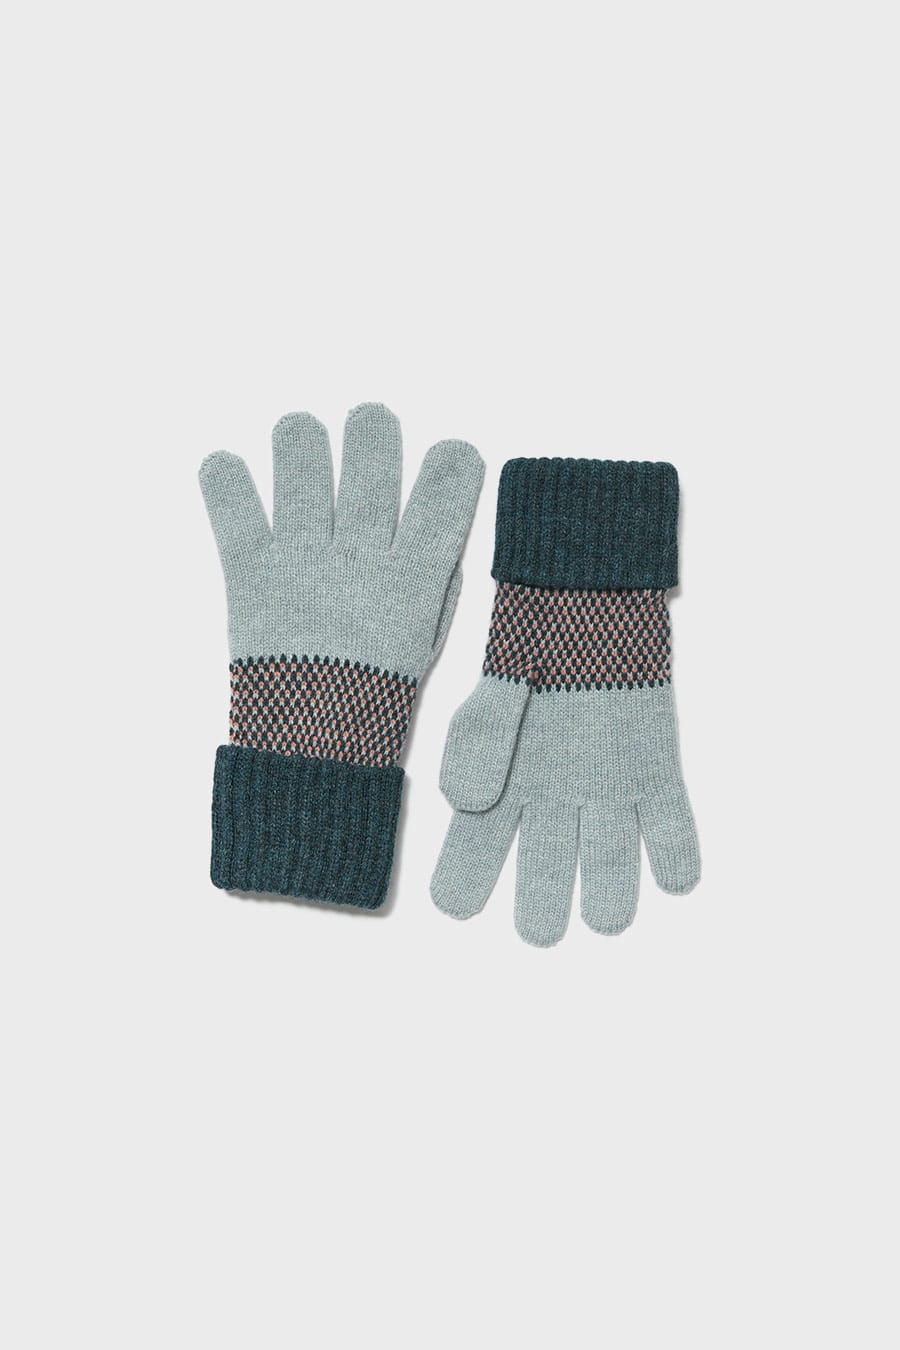 "Hilary Grant Gloves ""Tivoli"" (Collection only for online orders)"